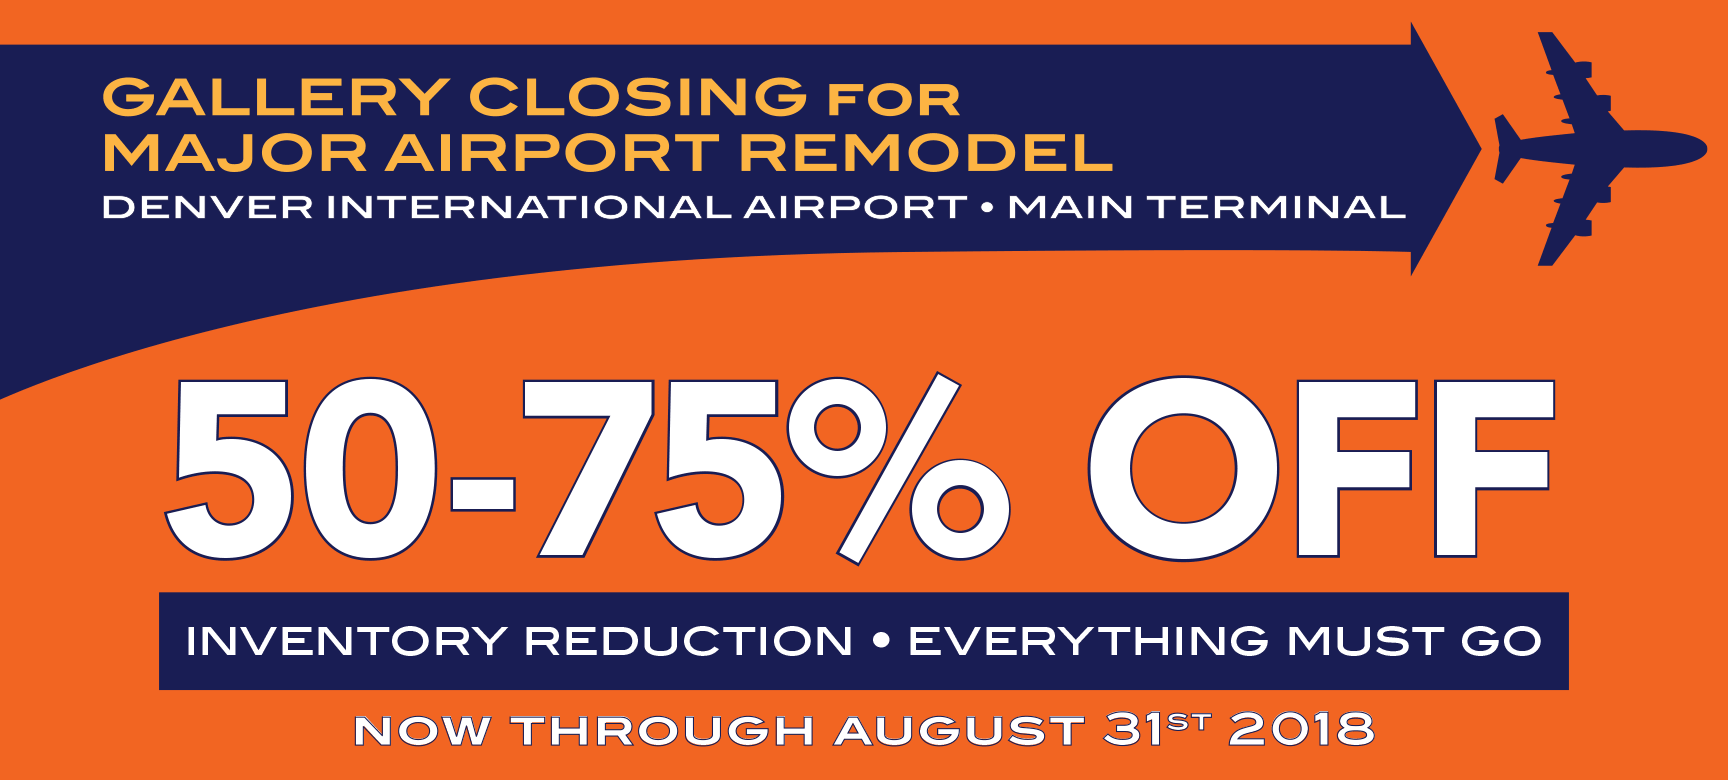 Closing for Major Airport Remodel - All in-stock fine art photographs are now 50-70% off.